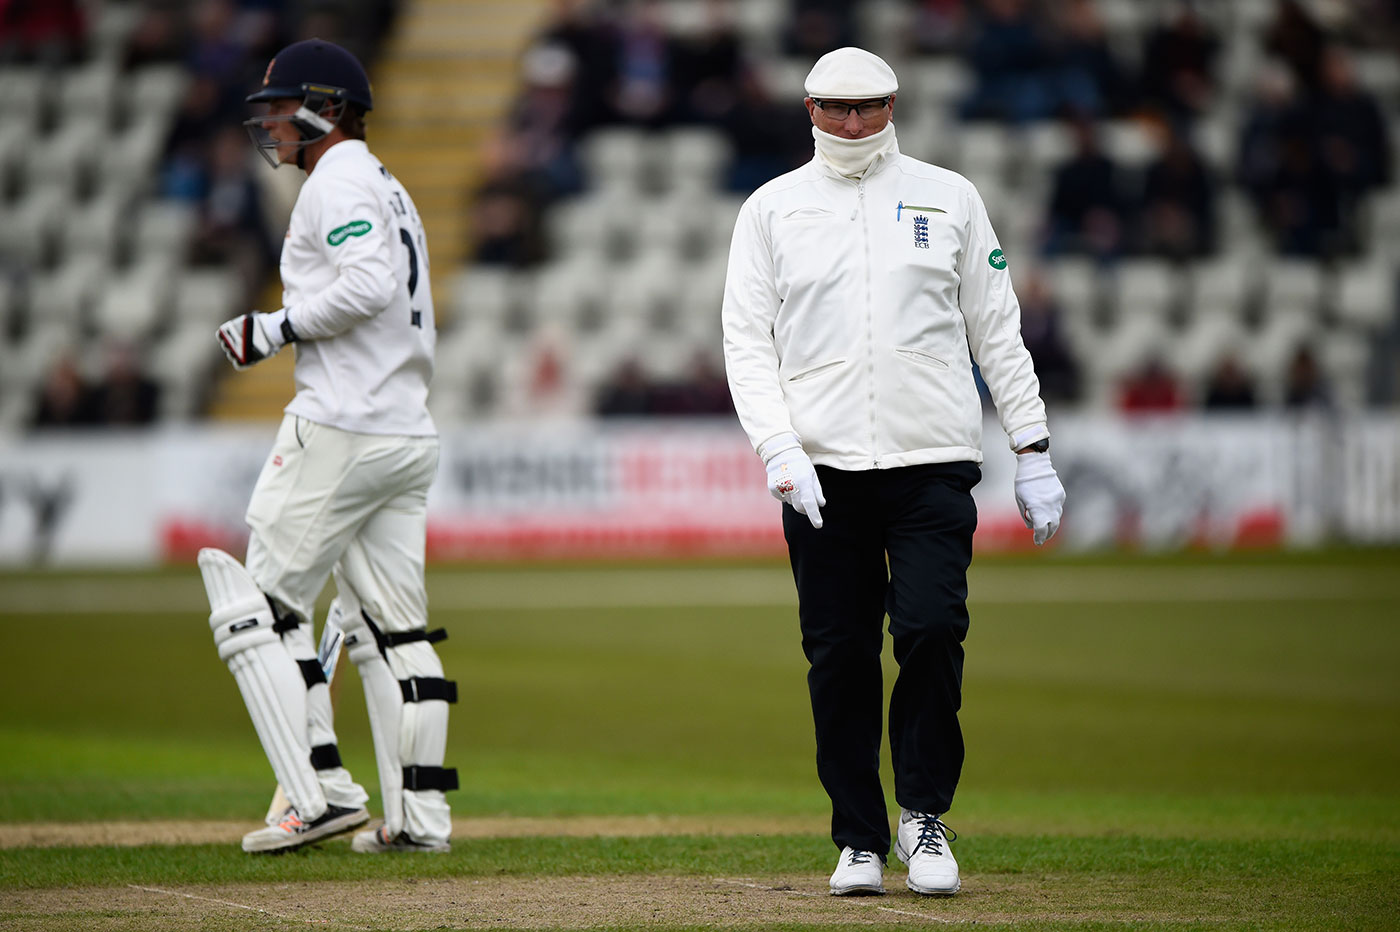 Umpire Neil Mallender is loving the form, function and fashion of this new look